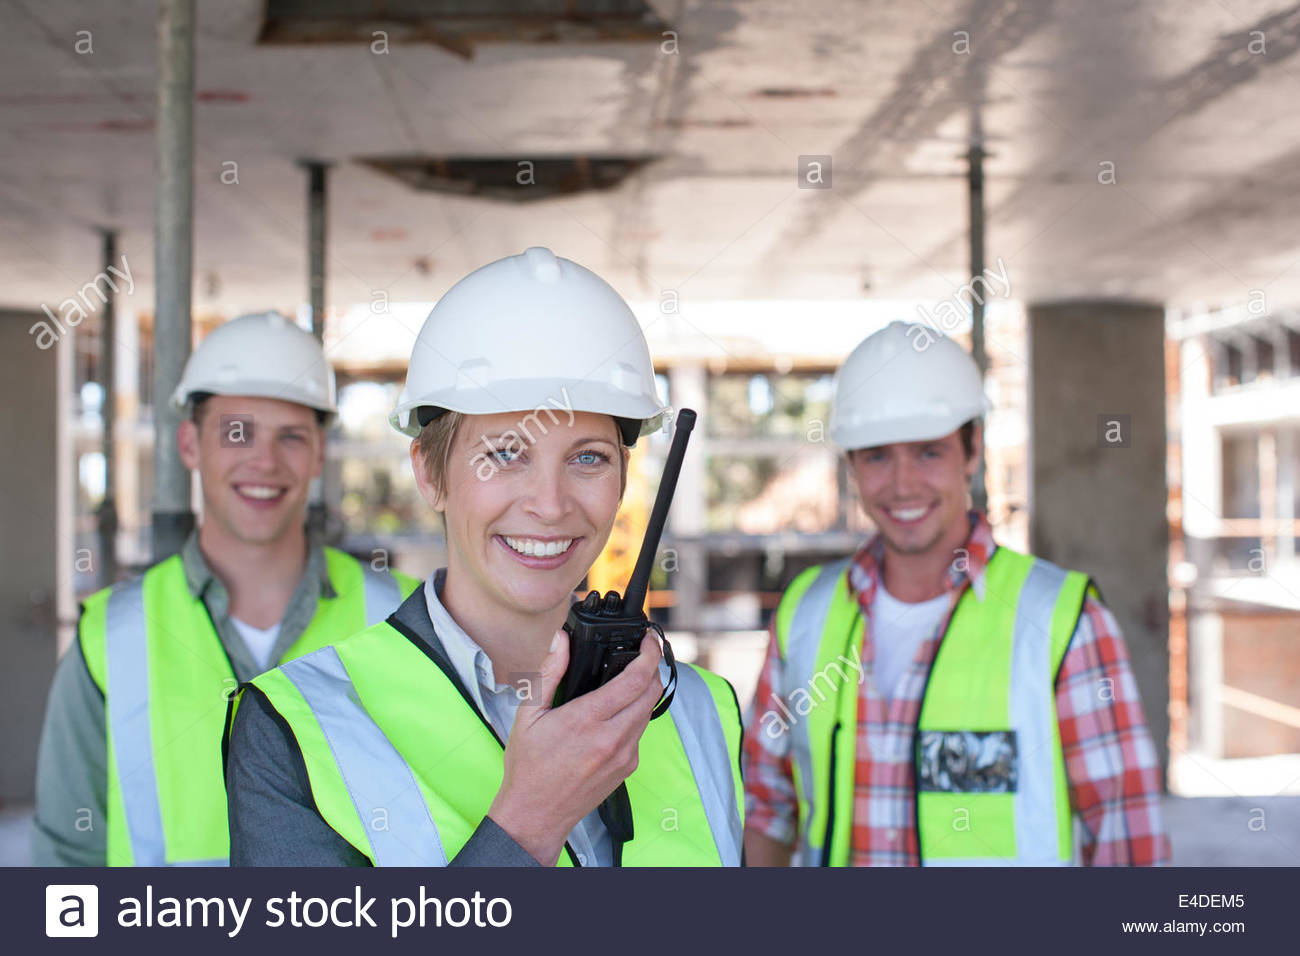 Construction worker holding walkie talkie on construction site - Stock Image